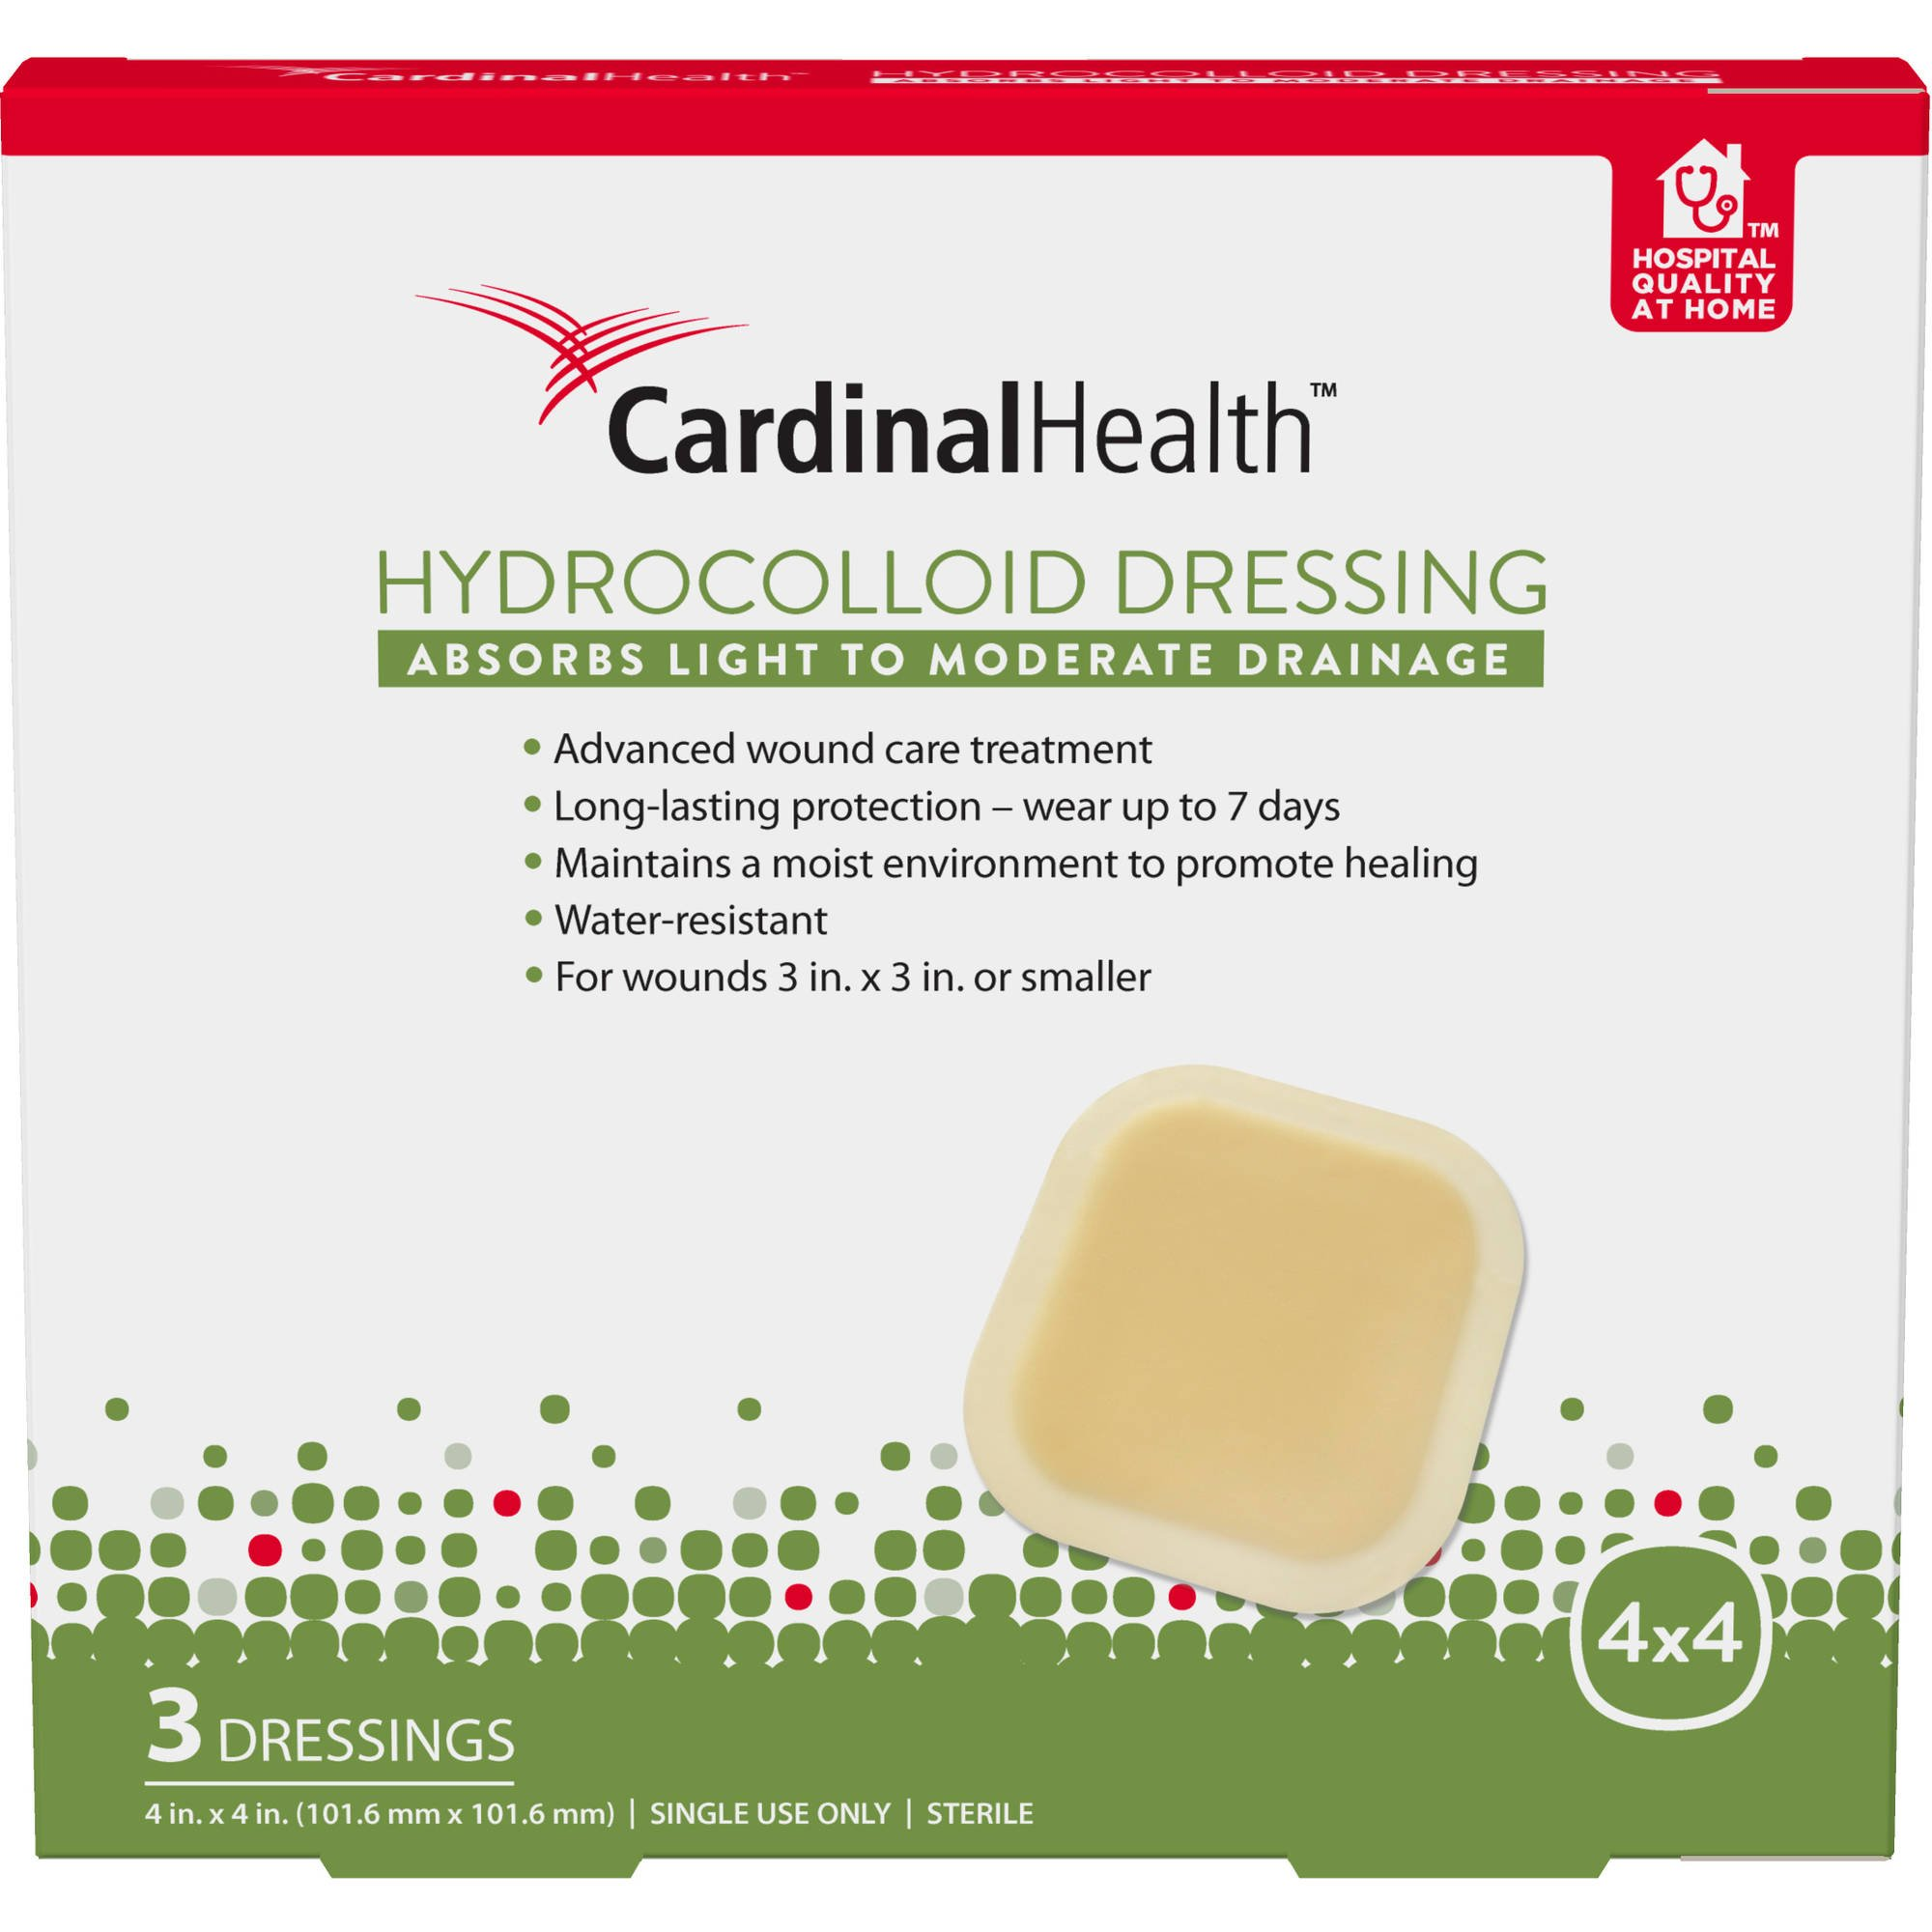 Cardinal Health HC44RR 4-inch x 4-inch Hydrocolloid Wound Dressing (3), 3 Count